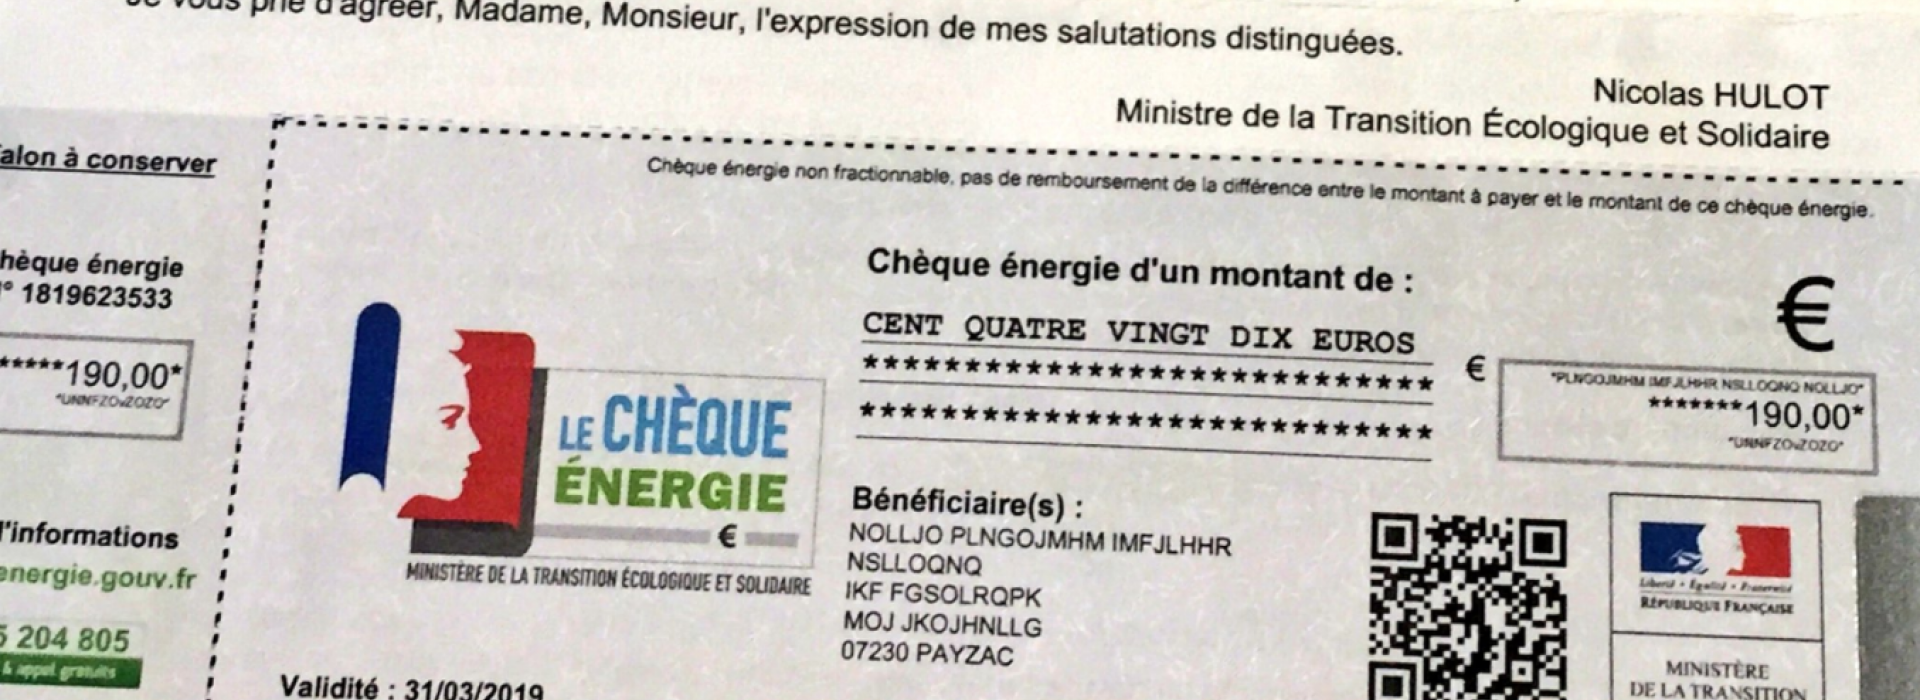 LE CHEQUE ENERGIE